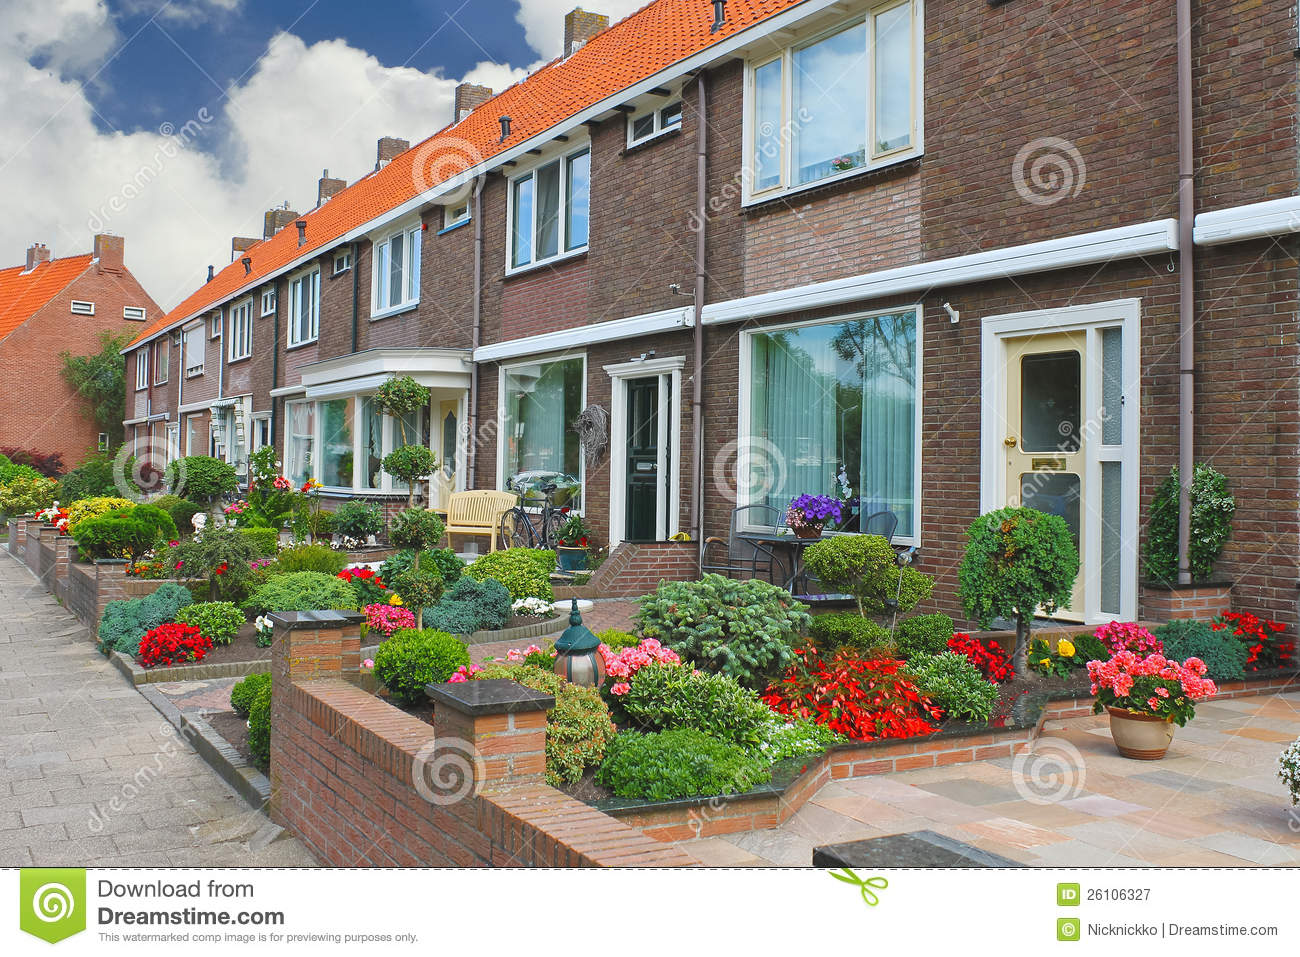 Small garden in front of the dutch house royalty free - Small garden front of house ...